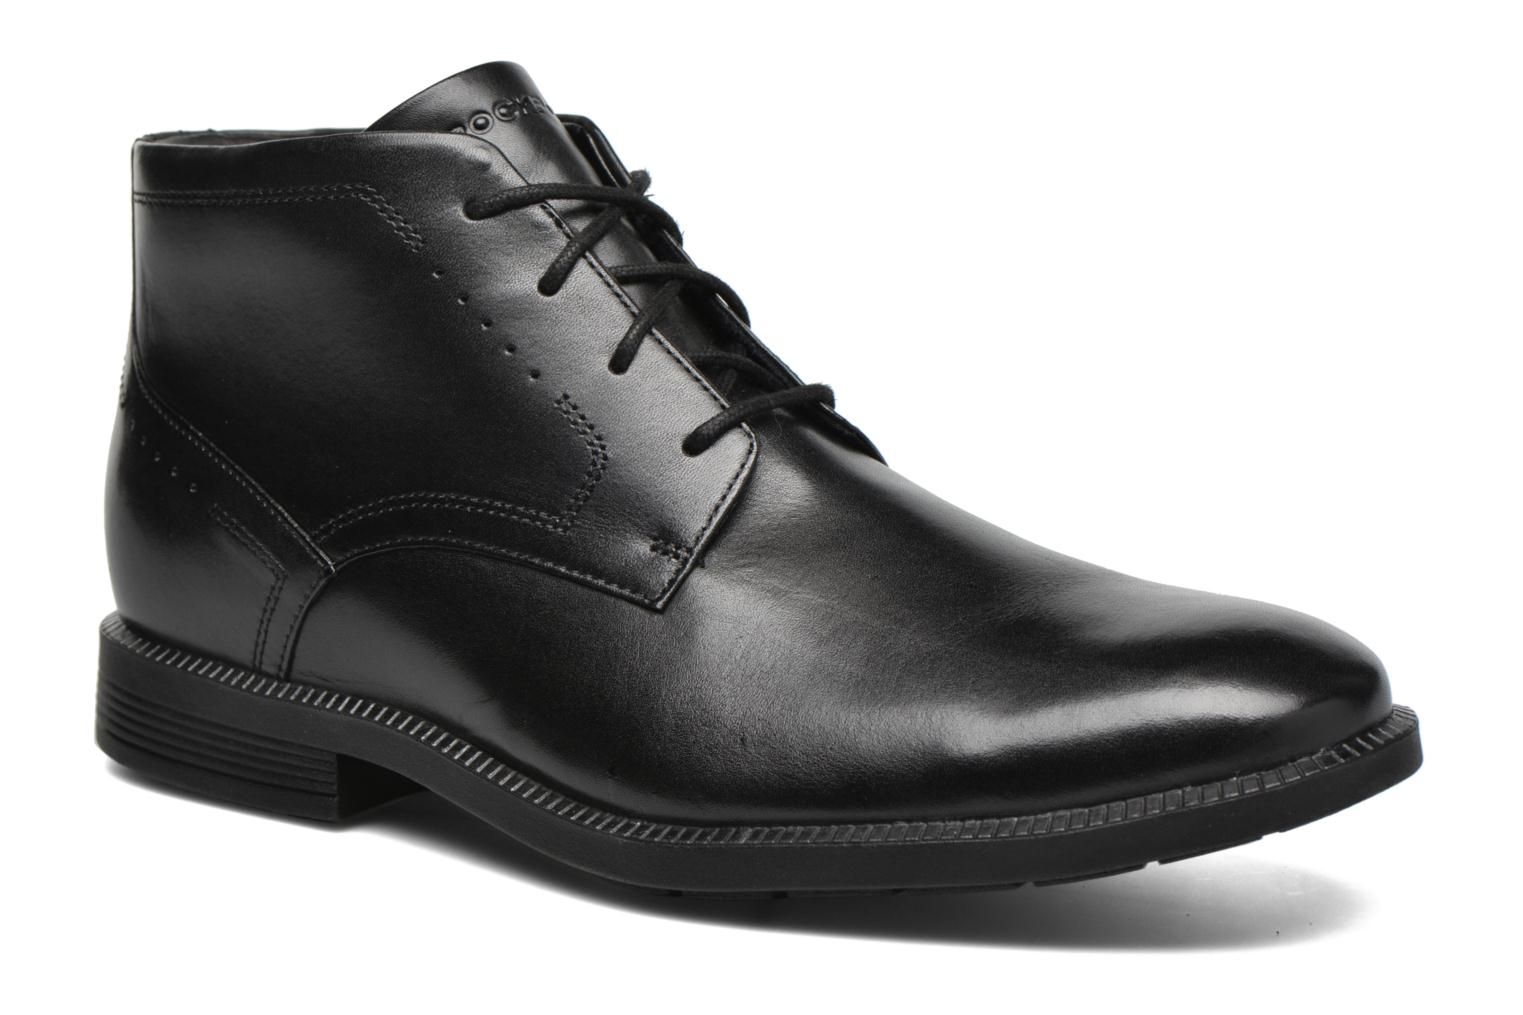 Marques Chaussure homme Rockport homme DP Modern Chukka Black